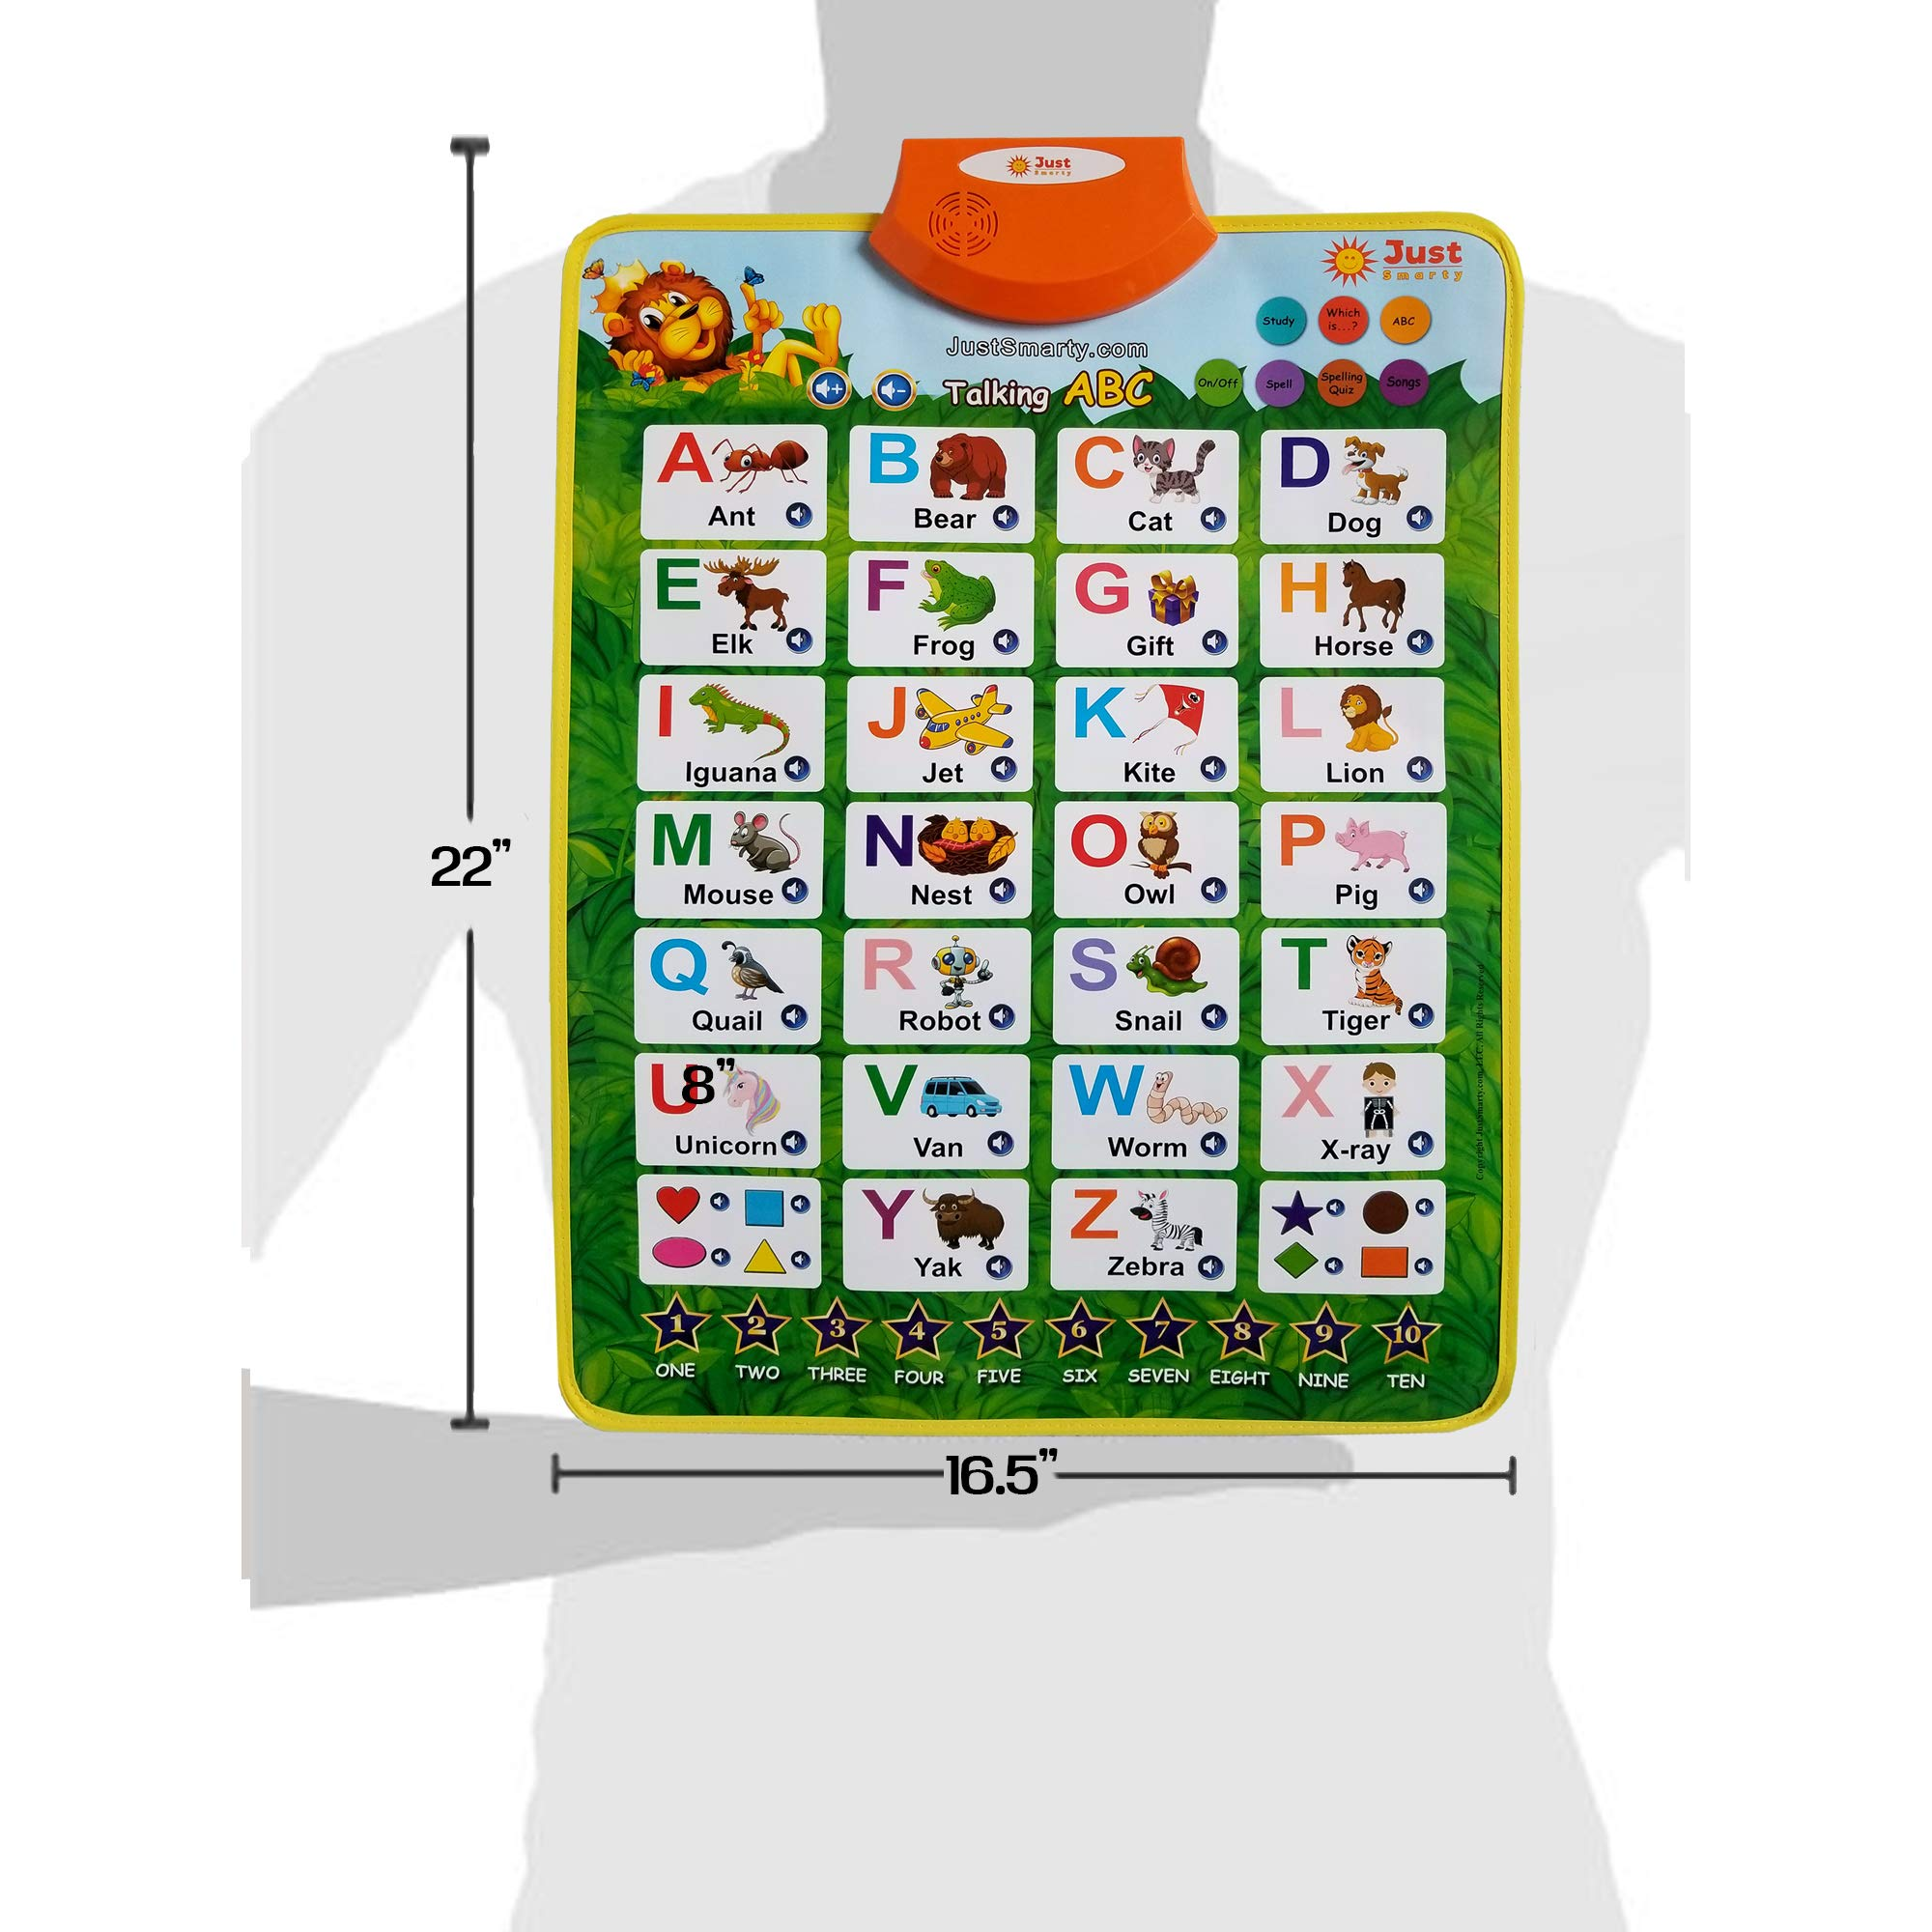 Just Smarty Electronic Interactive Alphabet Wall Chart with Shapes, Colors and Spelling, Talking ABC & 123s & Music Poster, Best Educational Toy for Toddler. Kids Fun Learning at Daycare, Preschool by Just Smarty (Image #5)